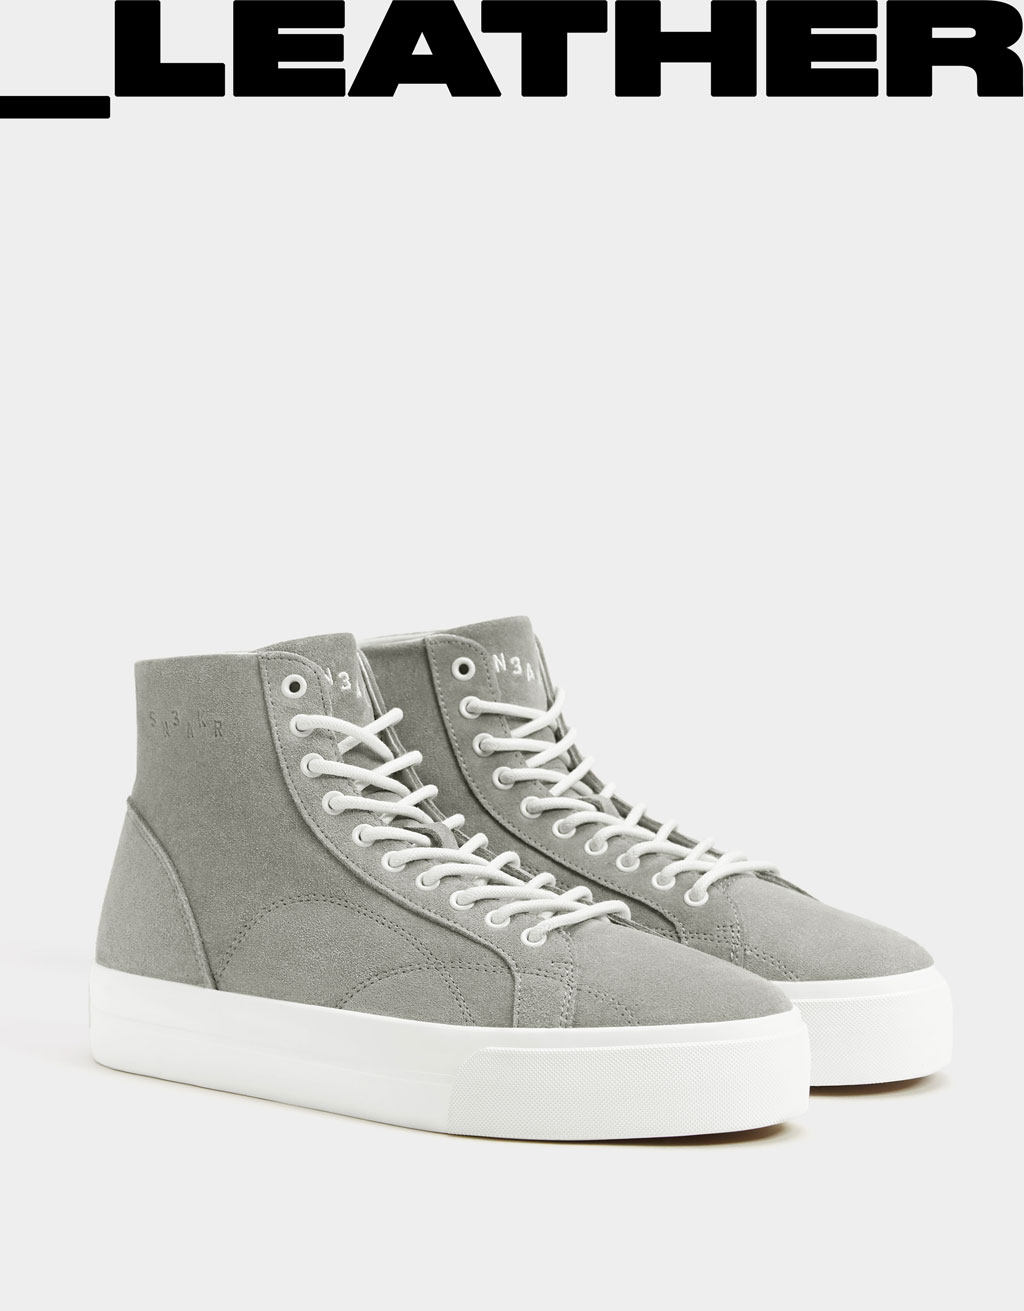 Leather Sneakers Leather Leather Men's High Men's High Sneakers Top Top Men's qScAL354Rj